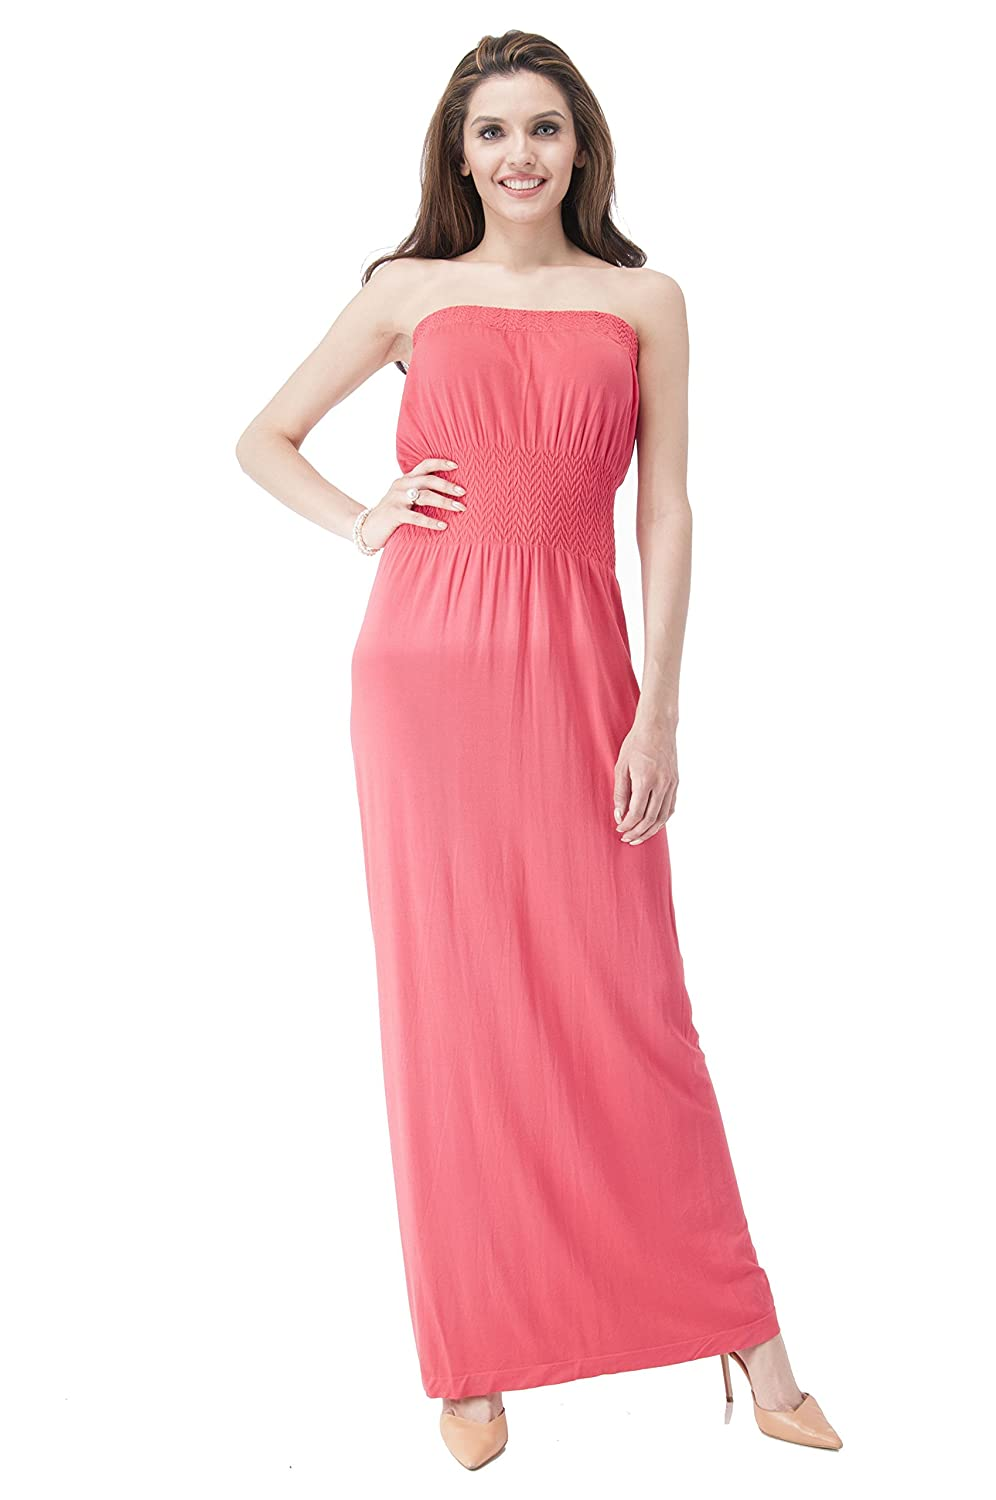 a0619ac43d1 Women s Sleeveless Tube top Smocked Seamless Maxi Dress (Small Medium